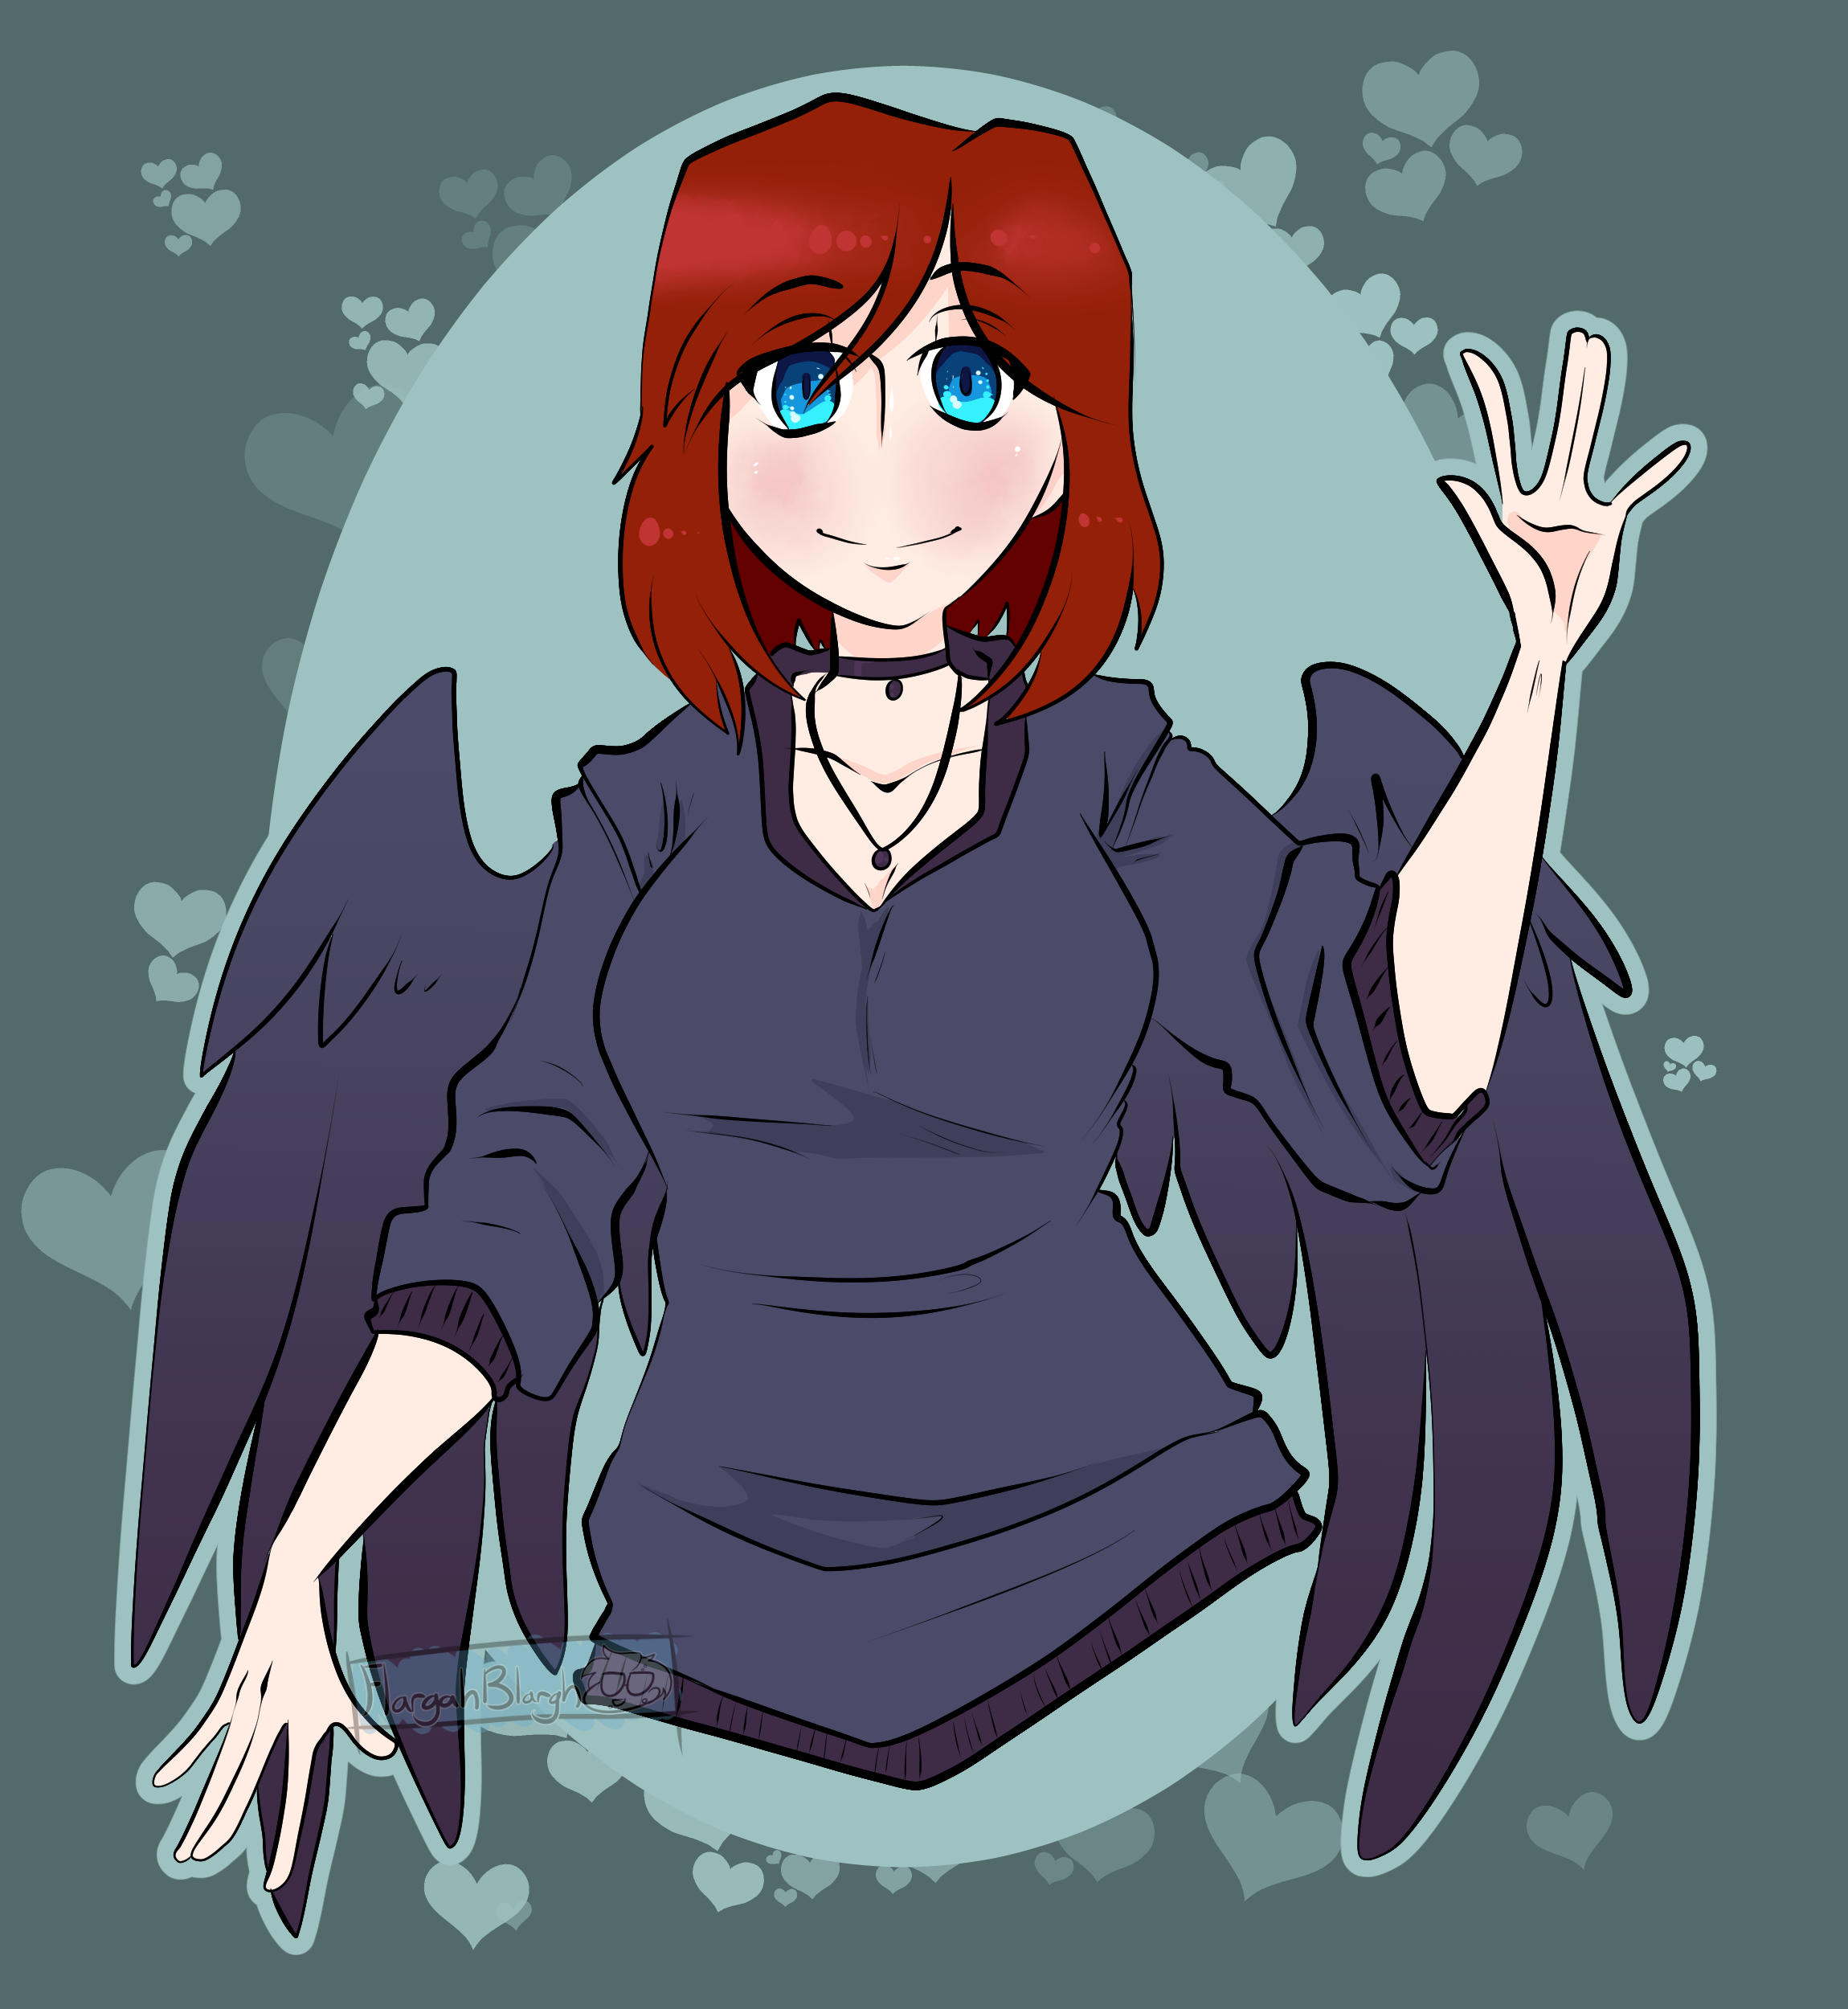 Commission-Red Hair, Purple Wings